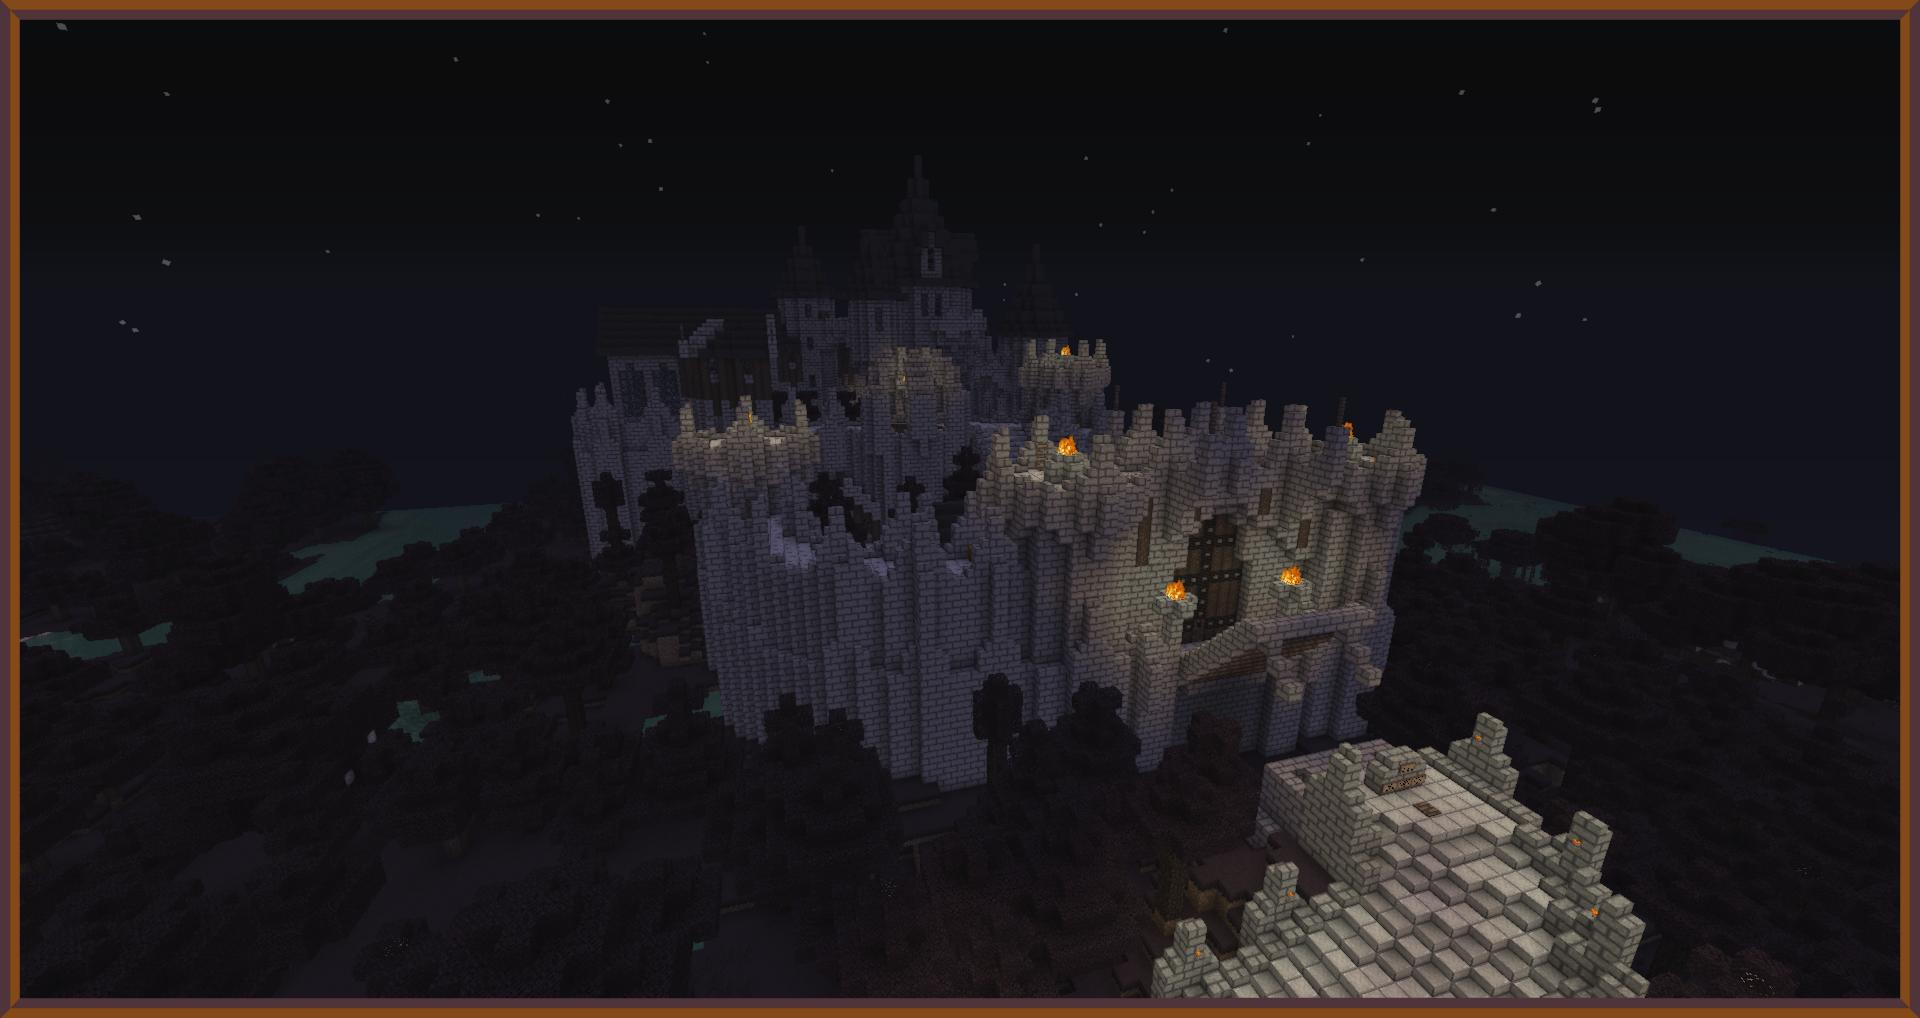 http://minecraft-forum.net/wp-content/uploads/2013/09/e0591__Mystery-of-the-Pumpkin-Castle-Map-3.jpg